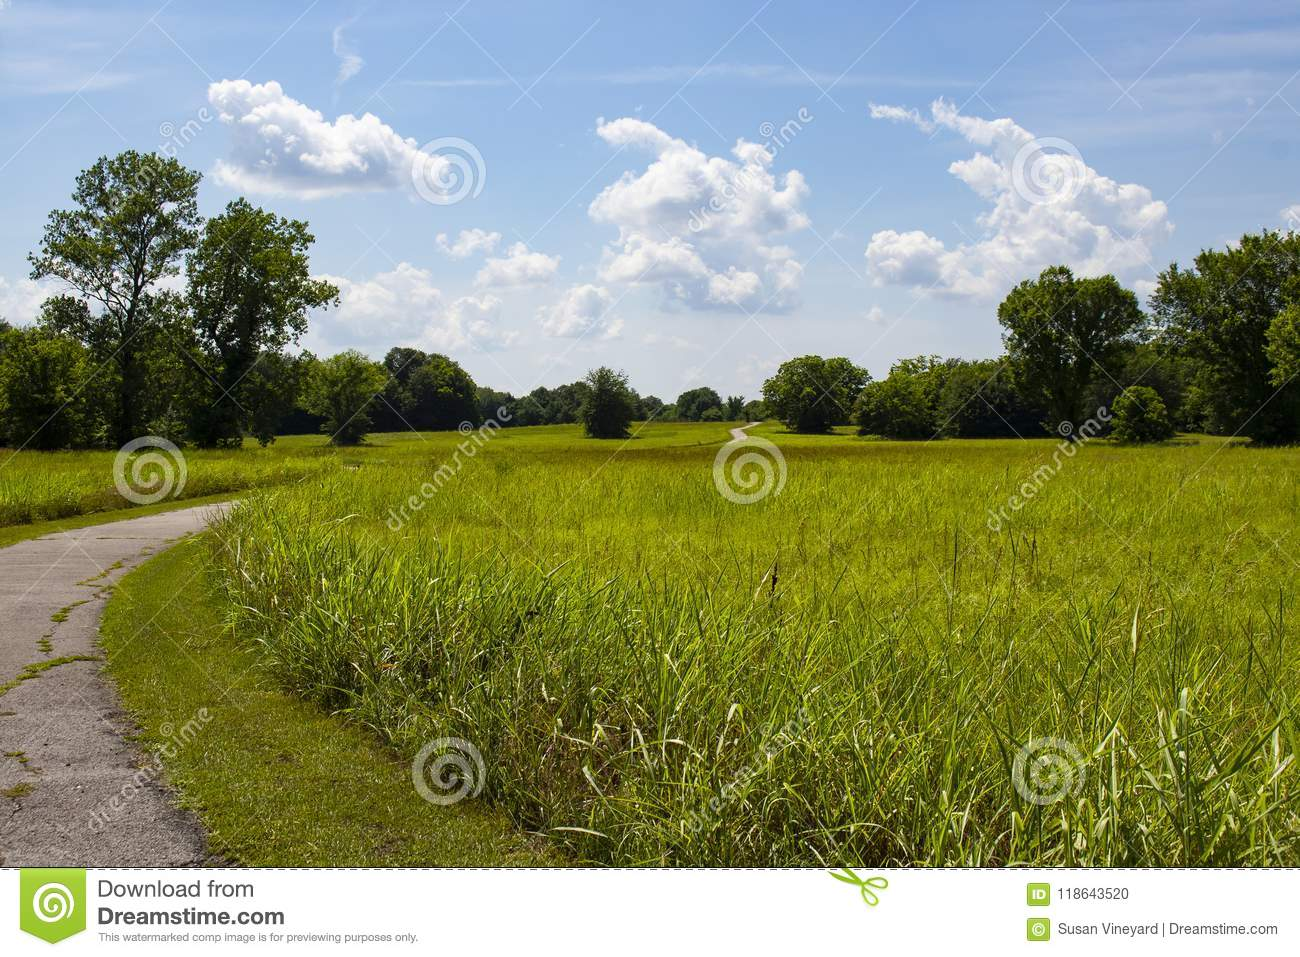 Winding path curves through meadow of grass and by green trees and up over hill all under beautiful blue sky and fluffy clouds